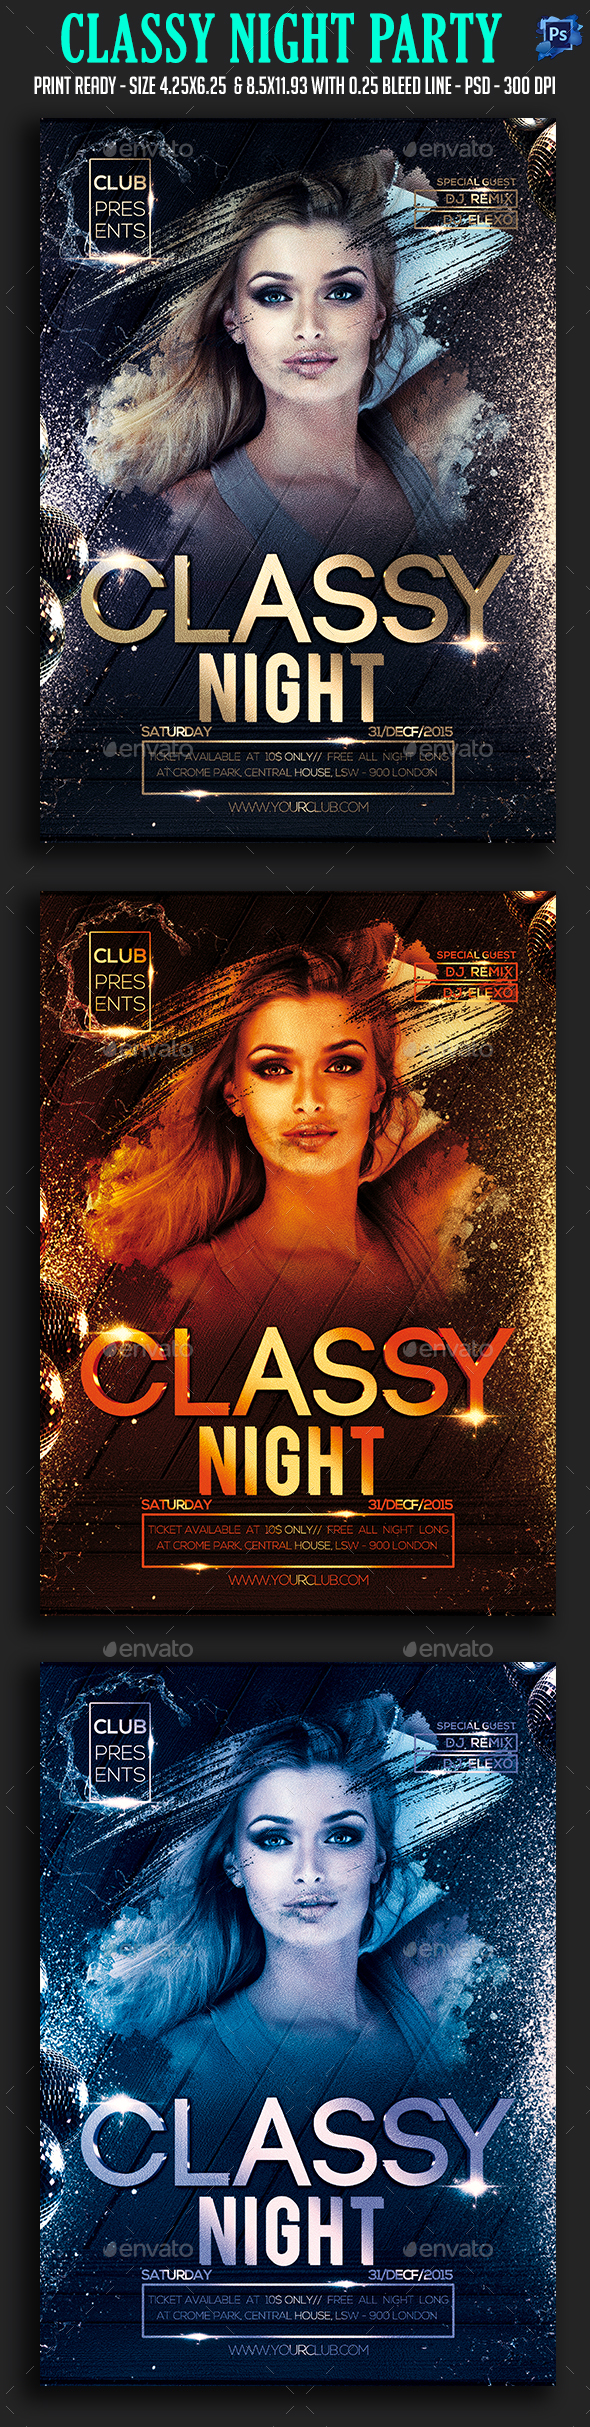 Classy Night Party Flyer - Clubs & Parties Events